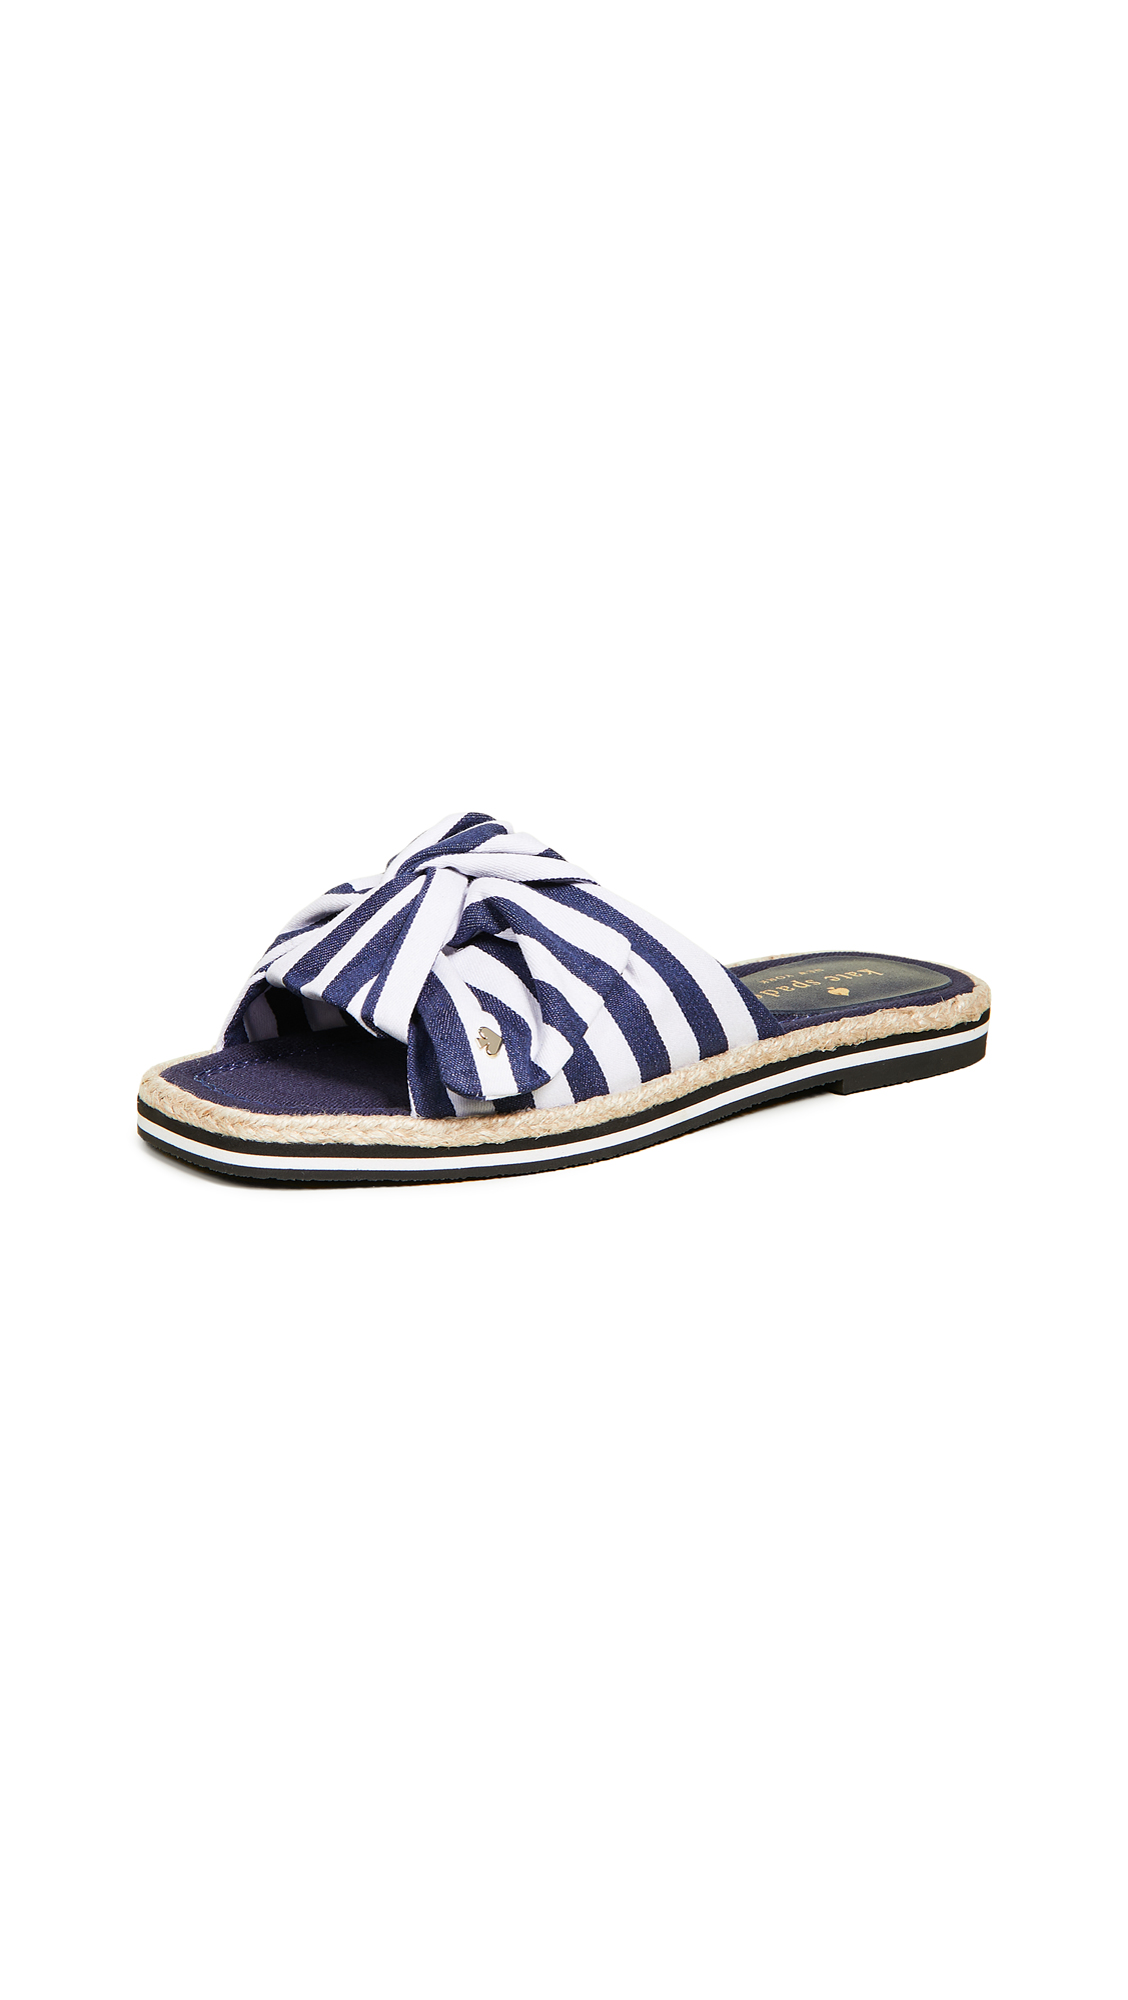 Kate Spade New York Caliana Striped Slides - Navy/White